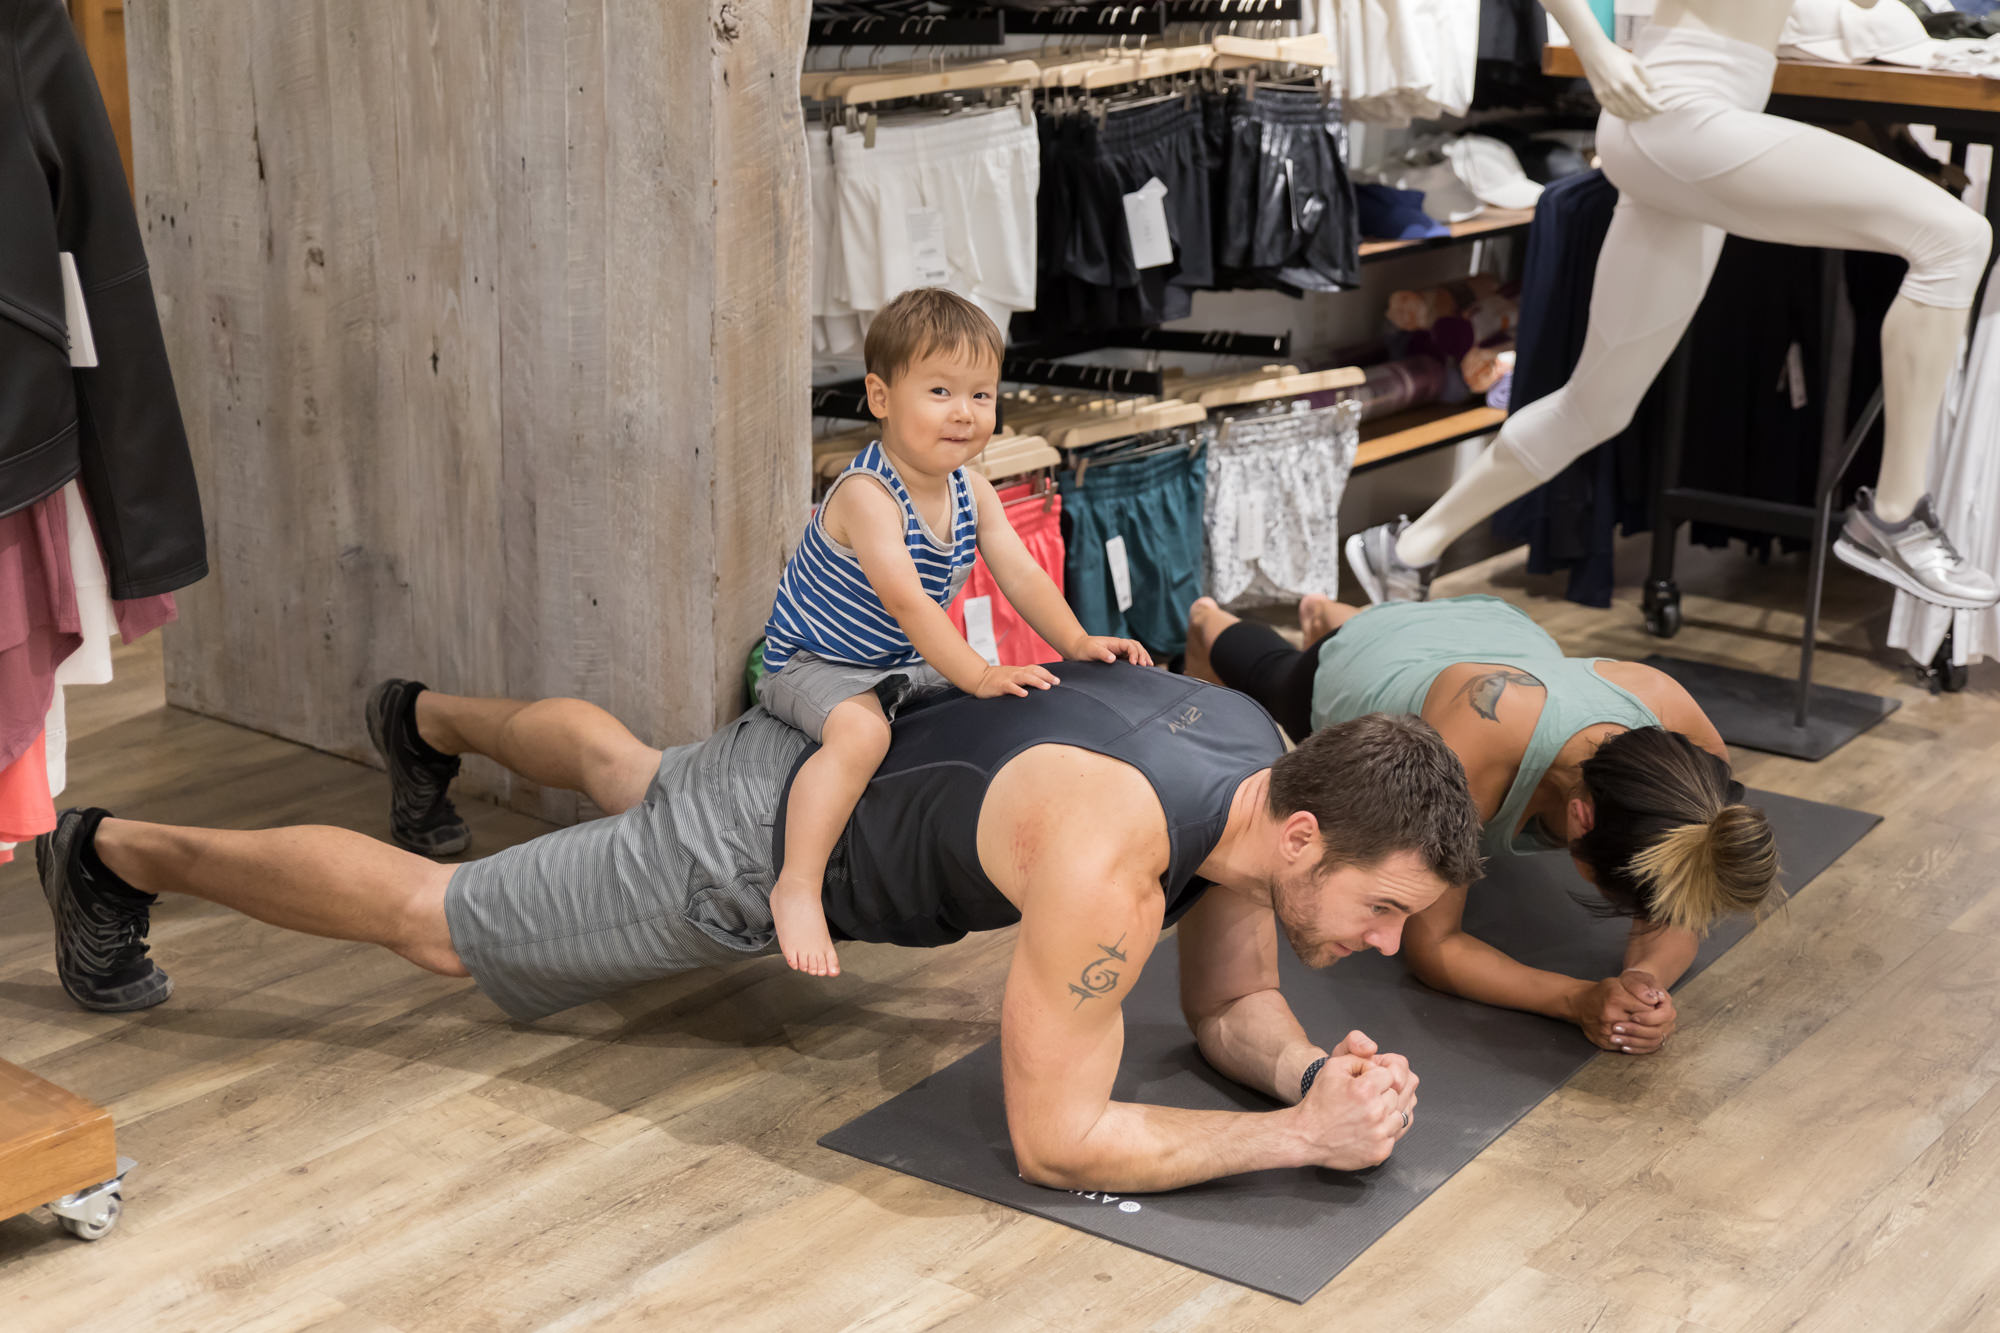 This little guy was a great sport, hanging out with his parents at the event while they worked out! I bet that plank is extra intense with the added weight!